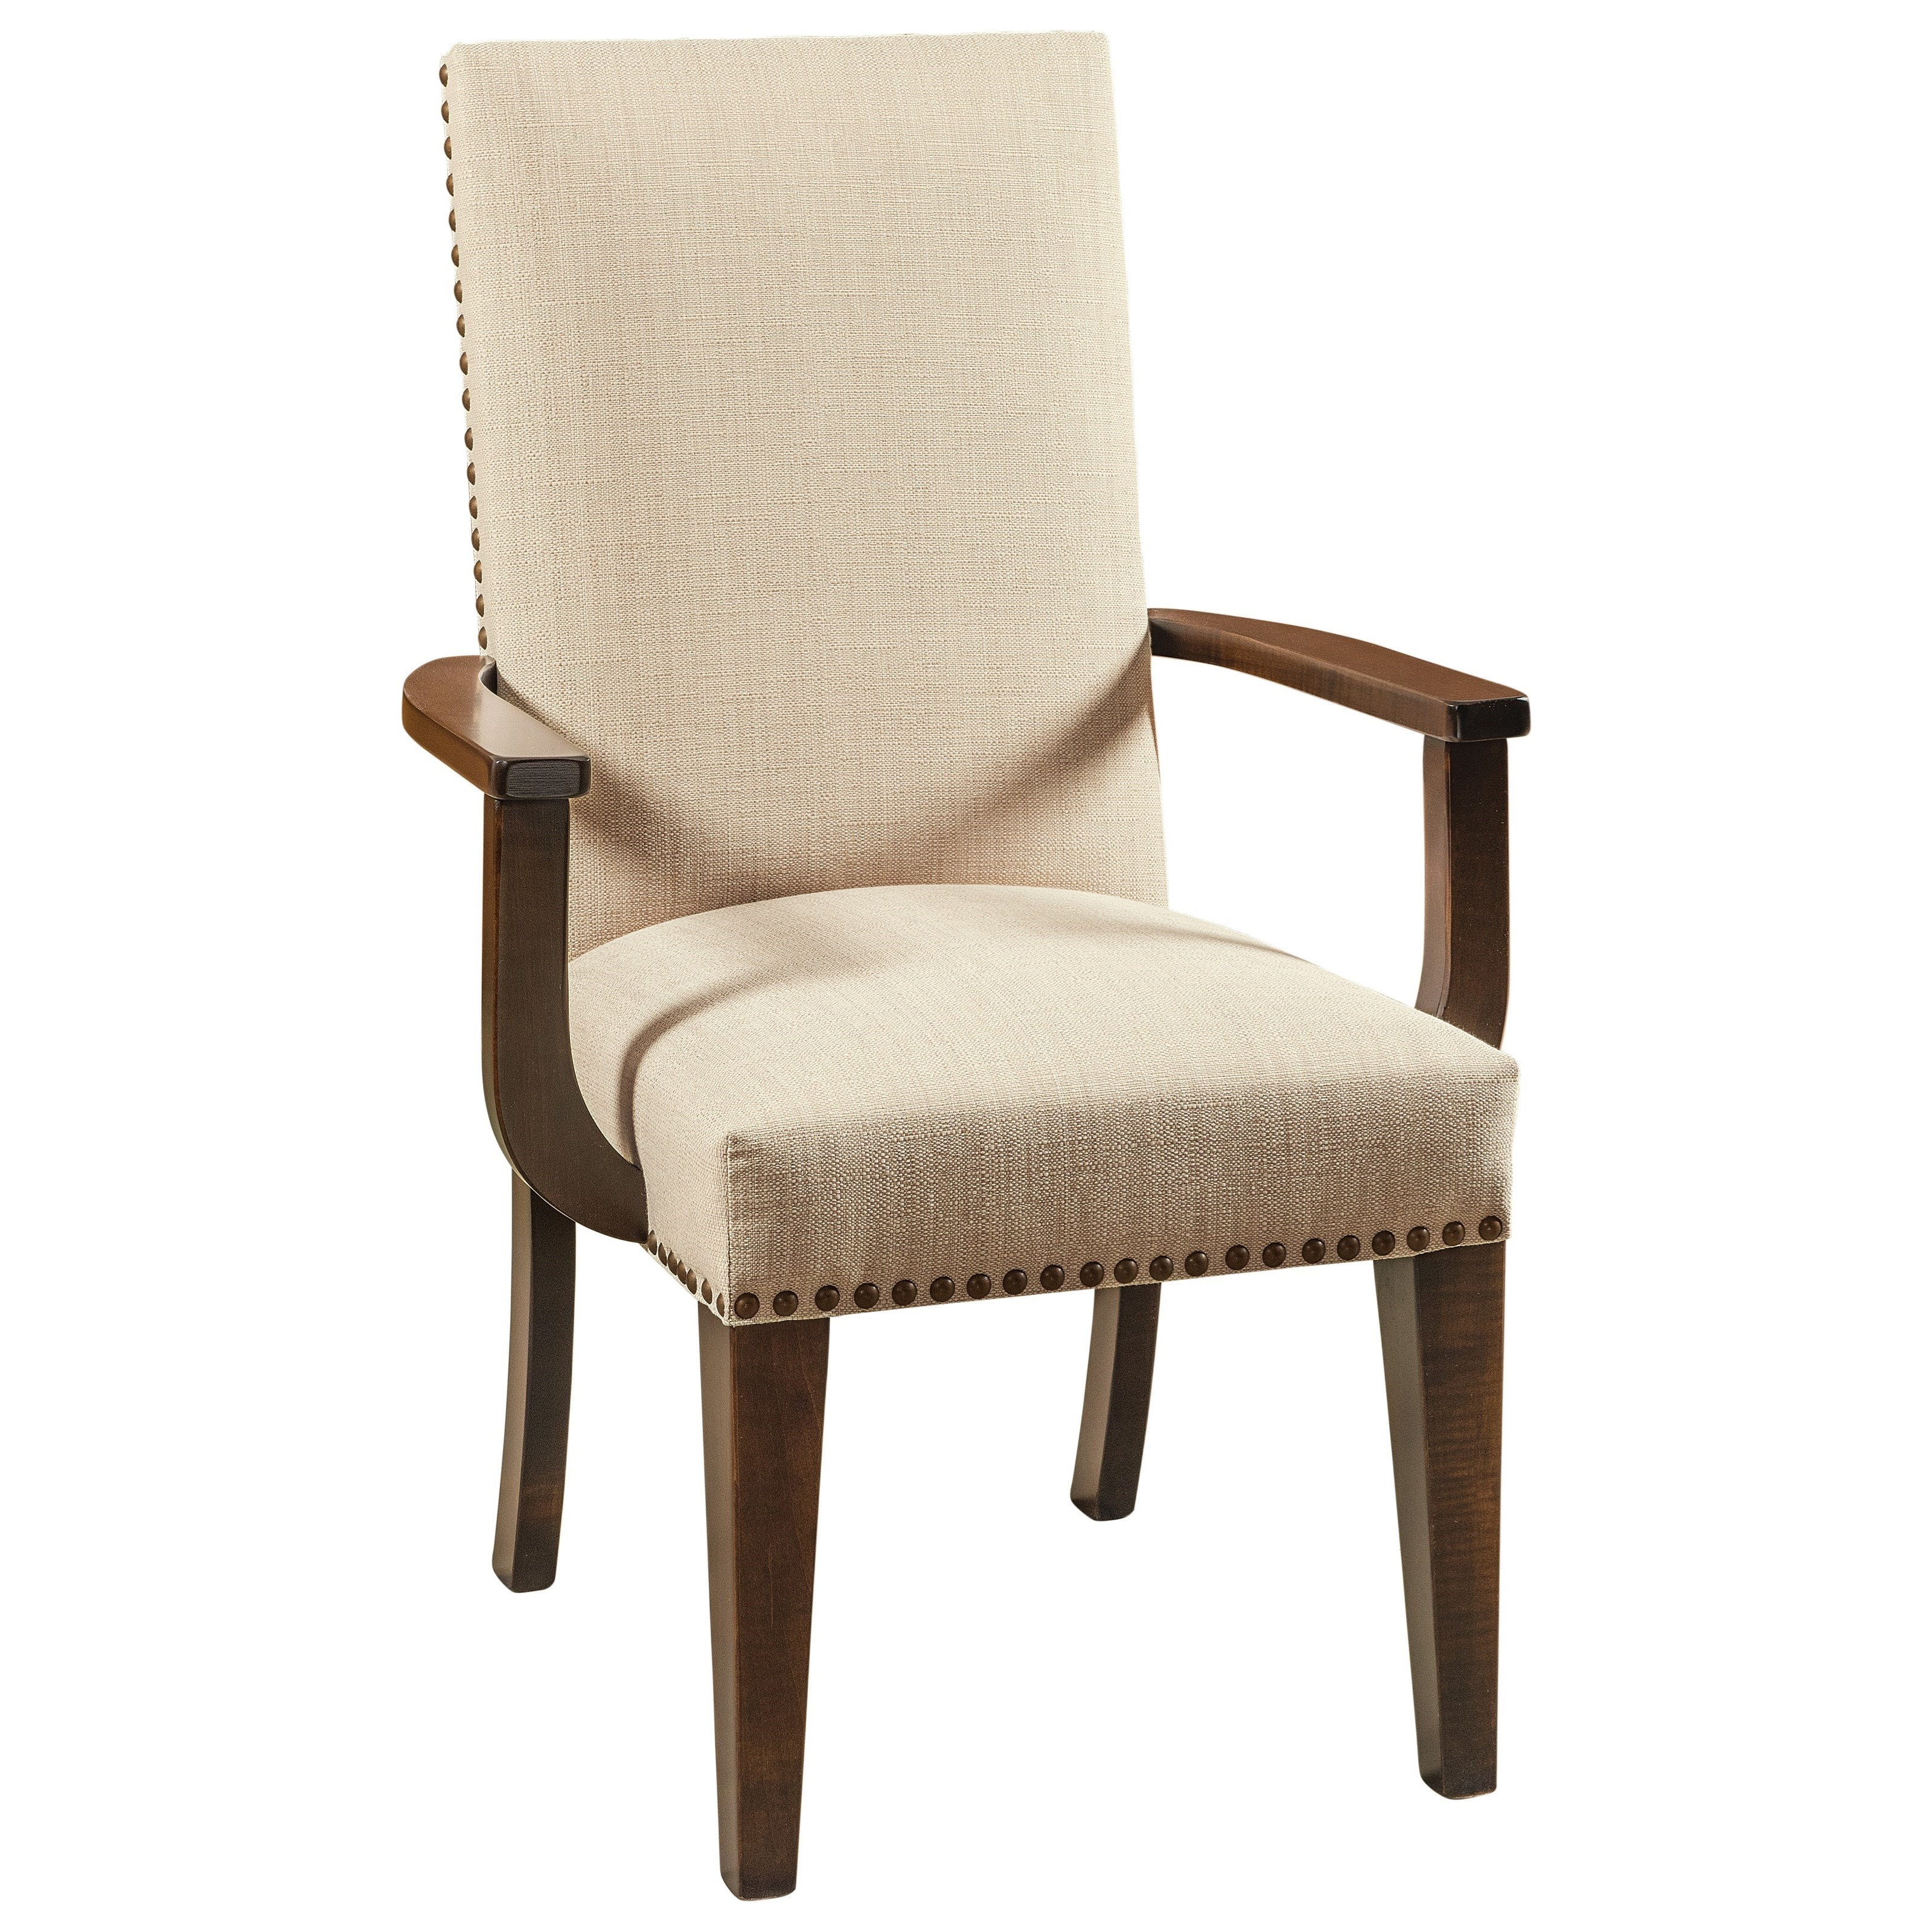 Corbin Customizable Solid Wood Arm Chair by F&N Woodworking at Saugerties Furniture Mart